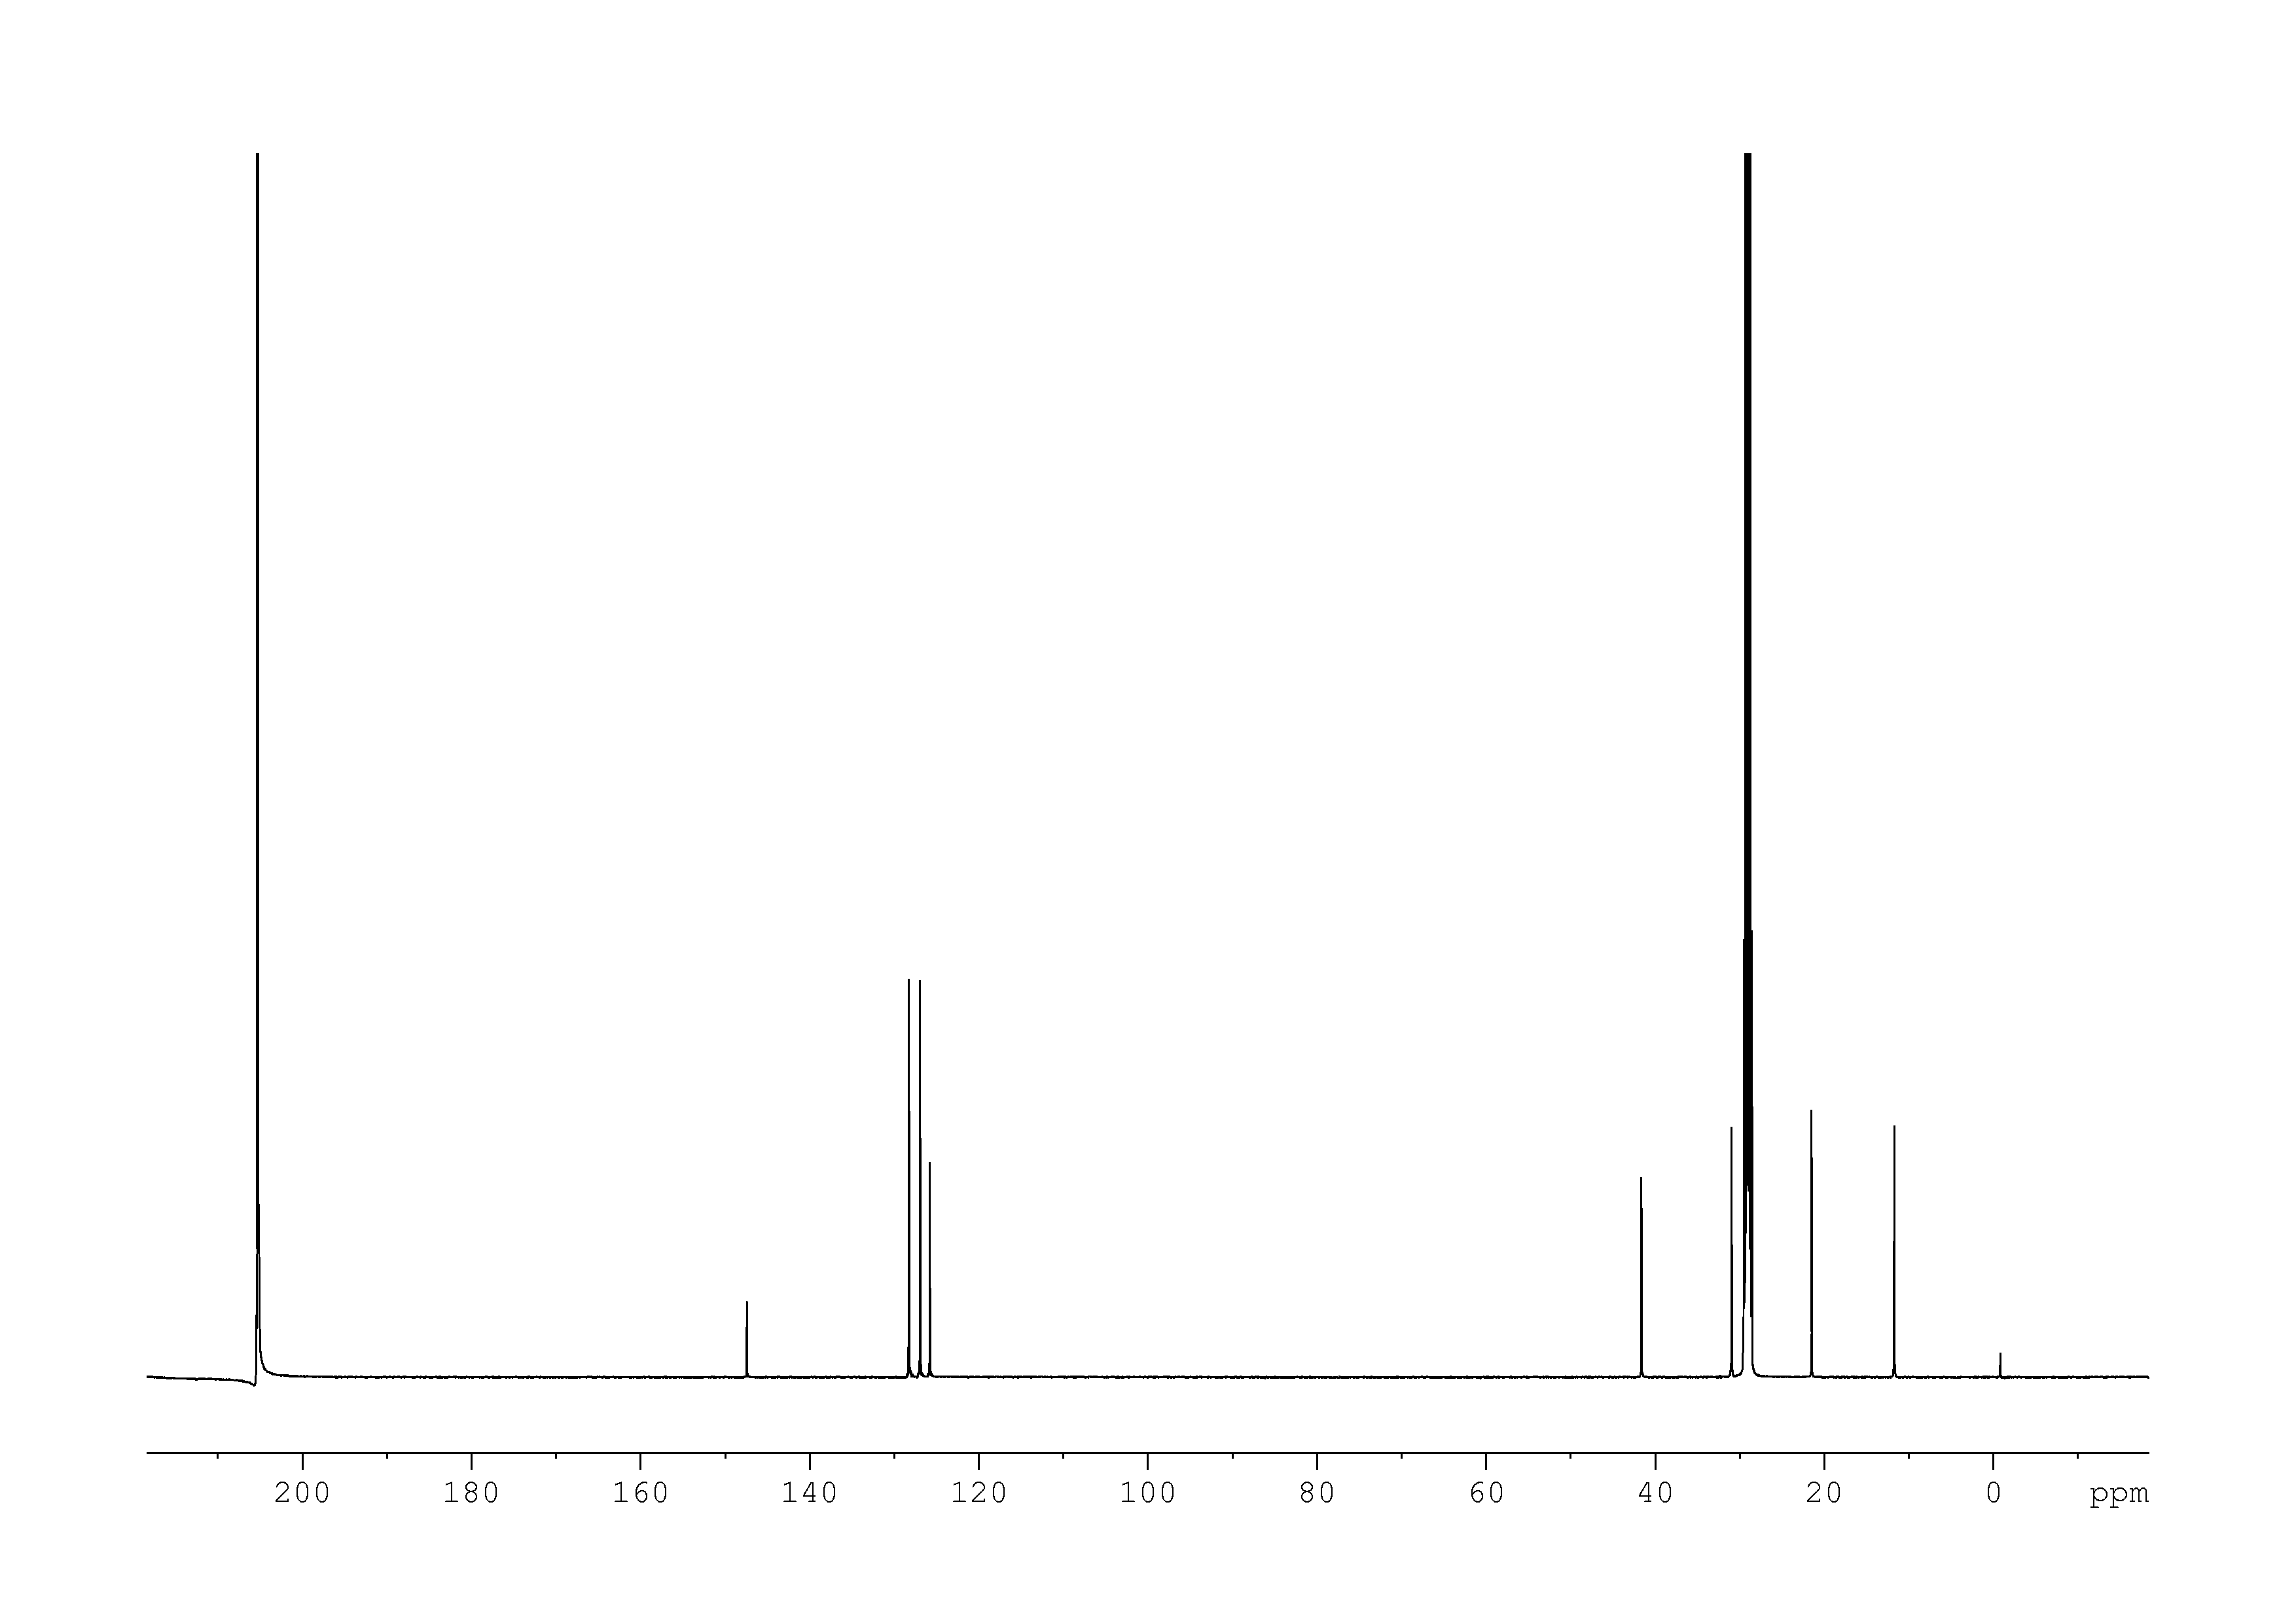 1D 13C, n/a spectrum for sec-butylbenzene